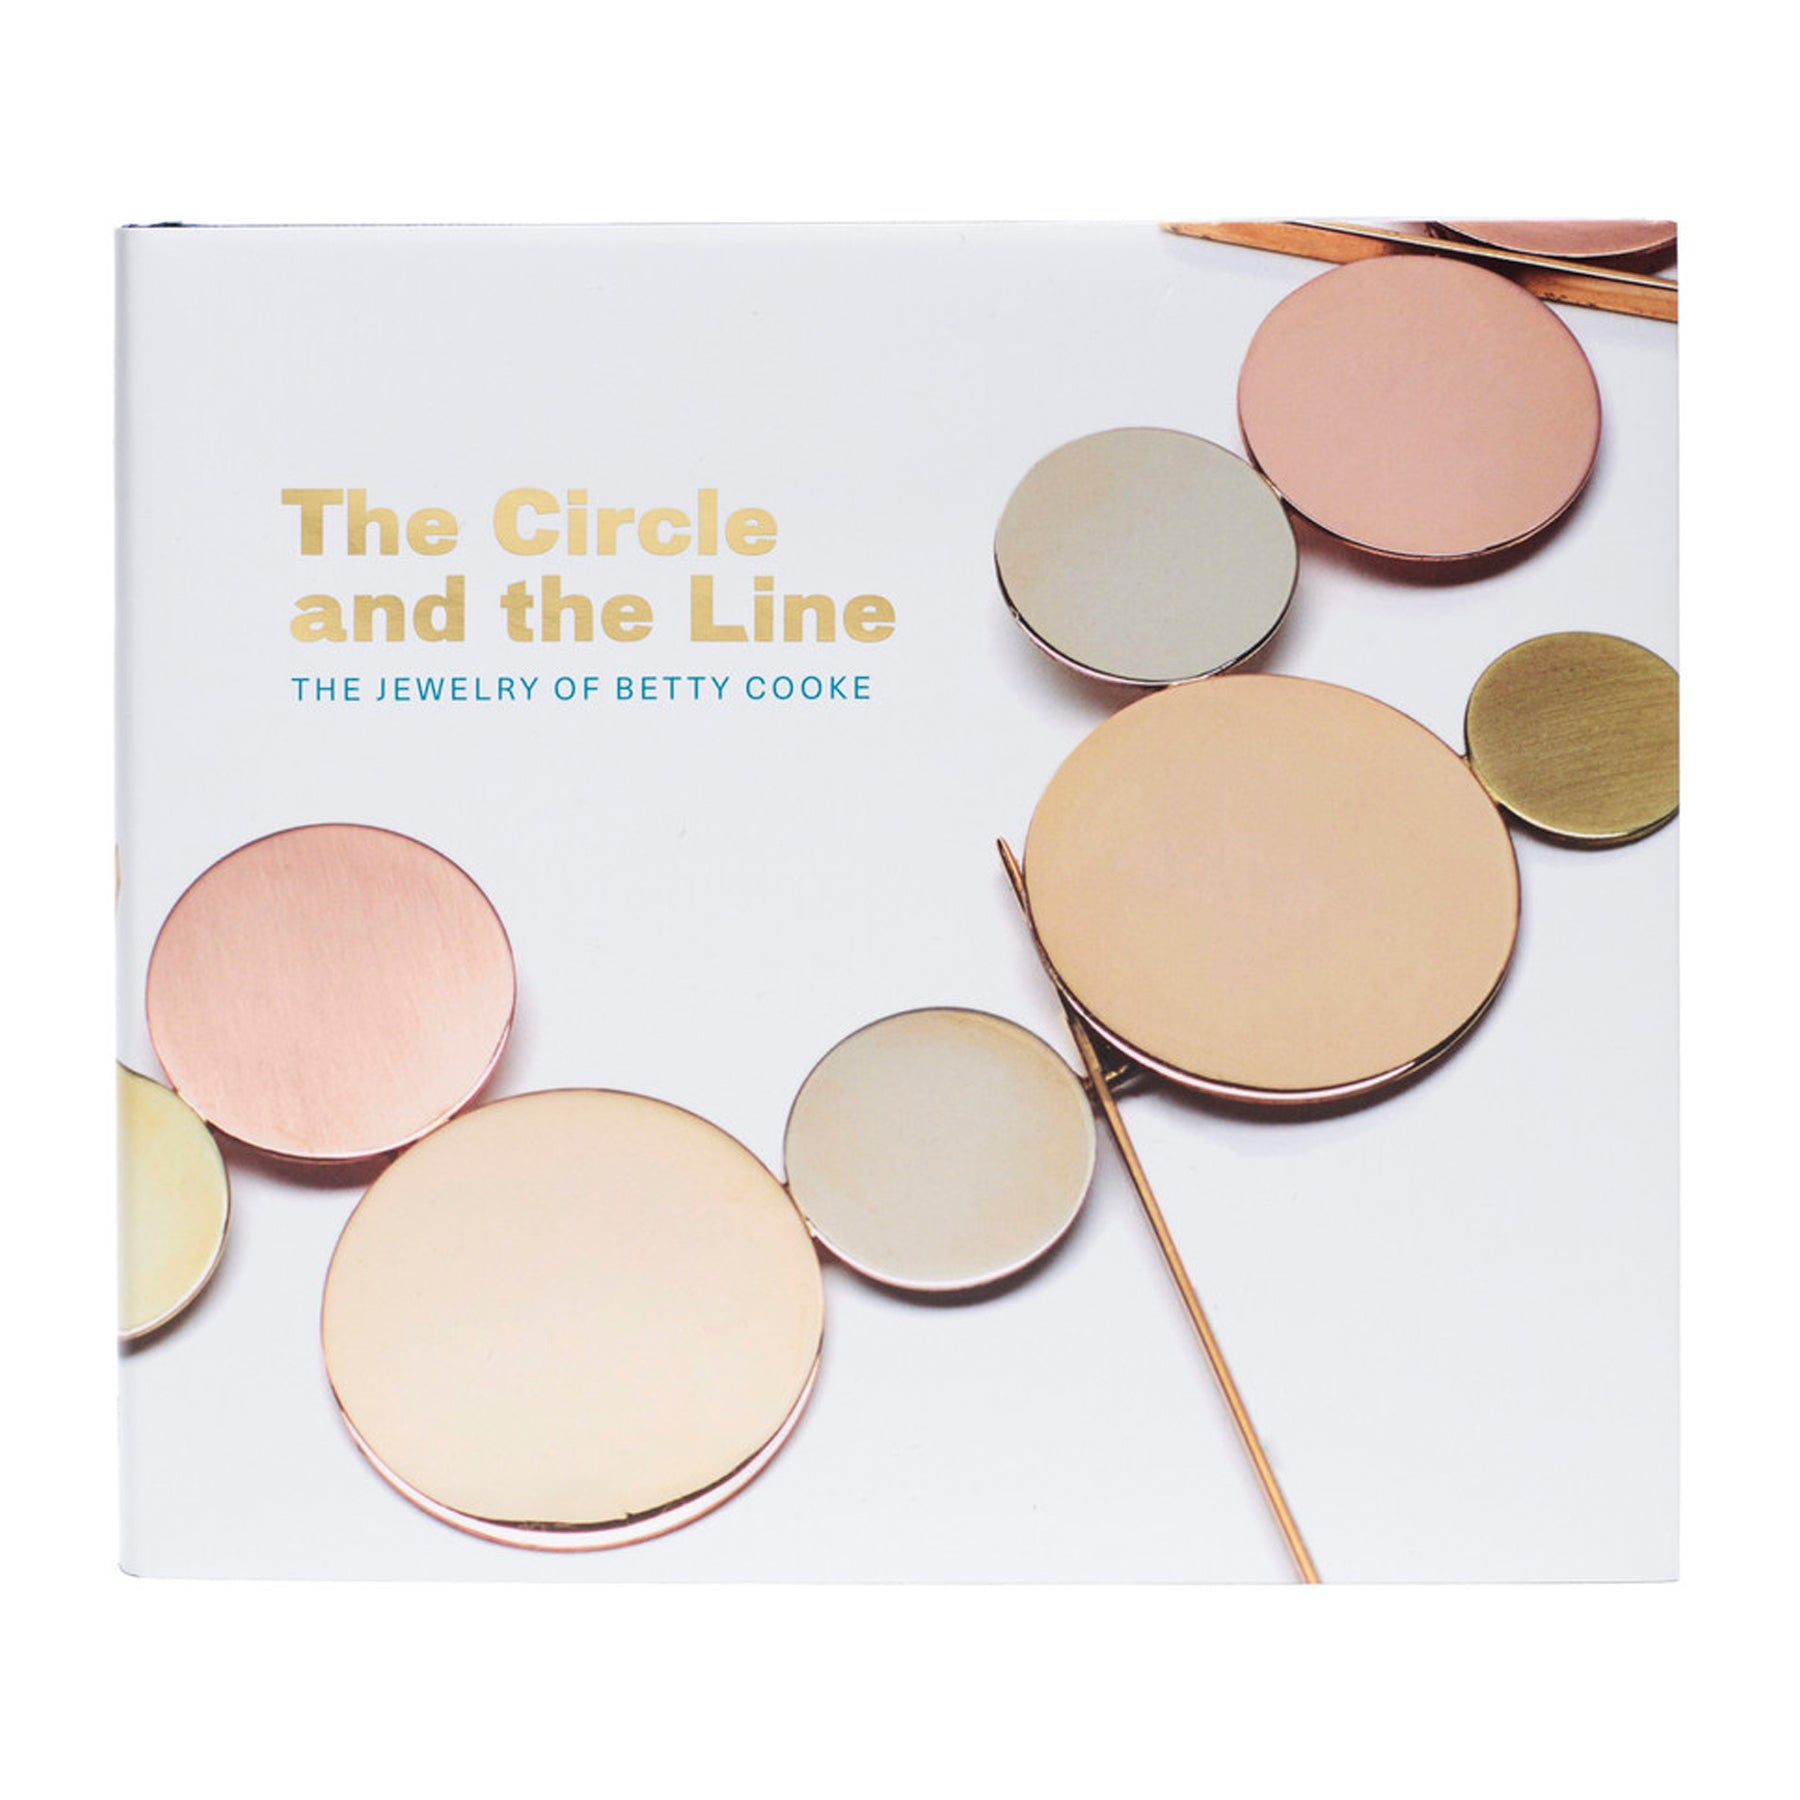 The Circle and the Line: The Jewelry of Betty Cooke